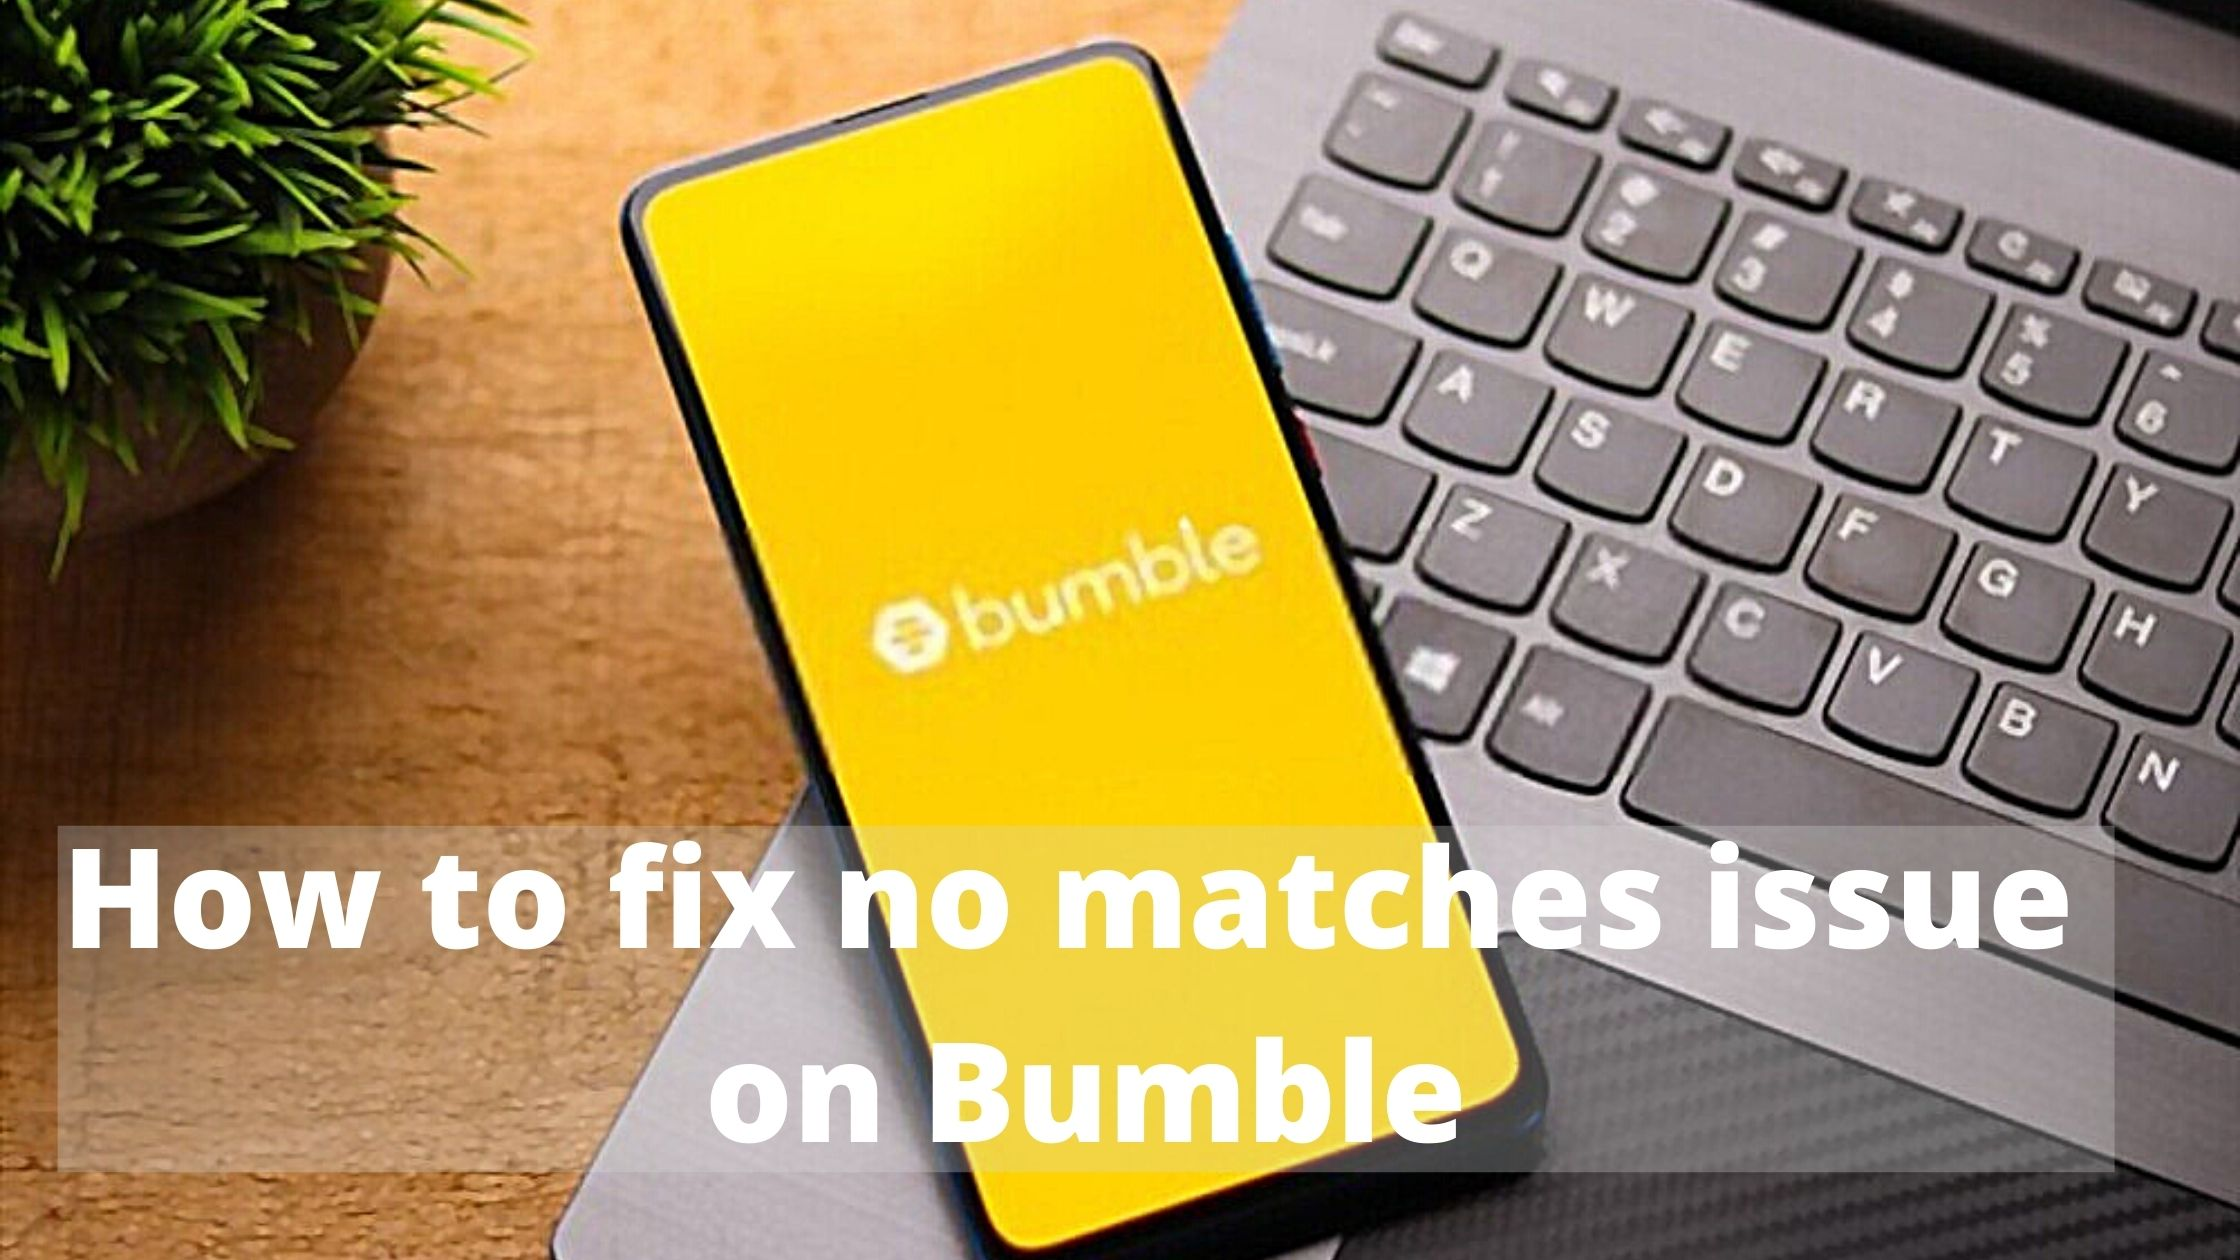 fix not getting enough matches on Bumble issue